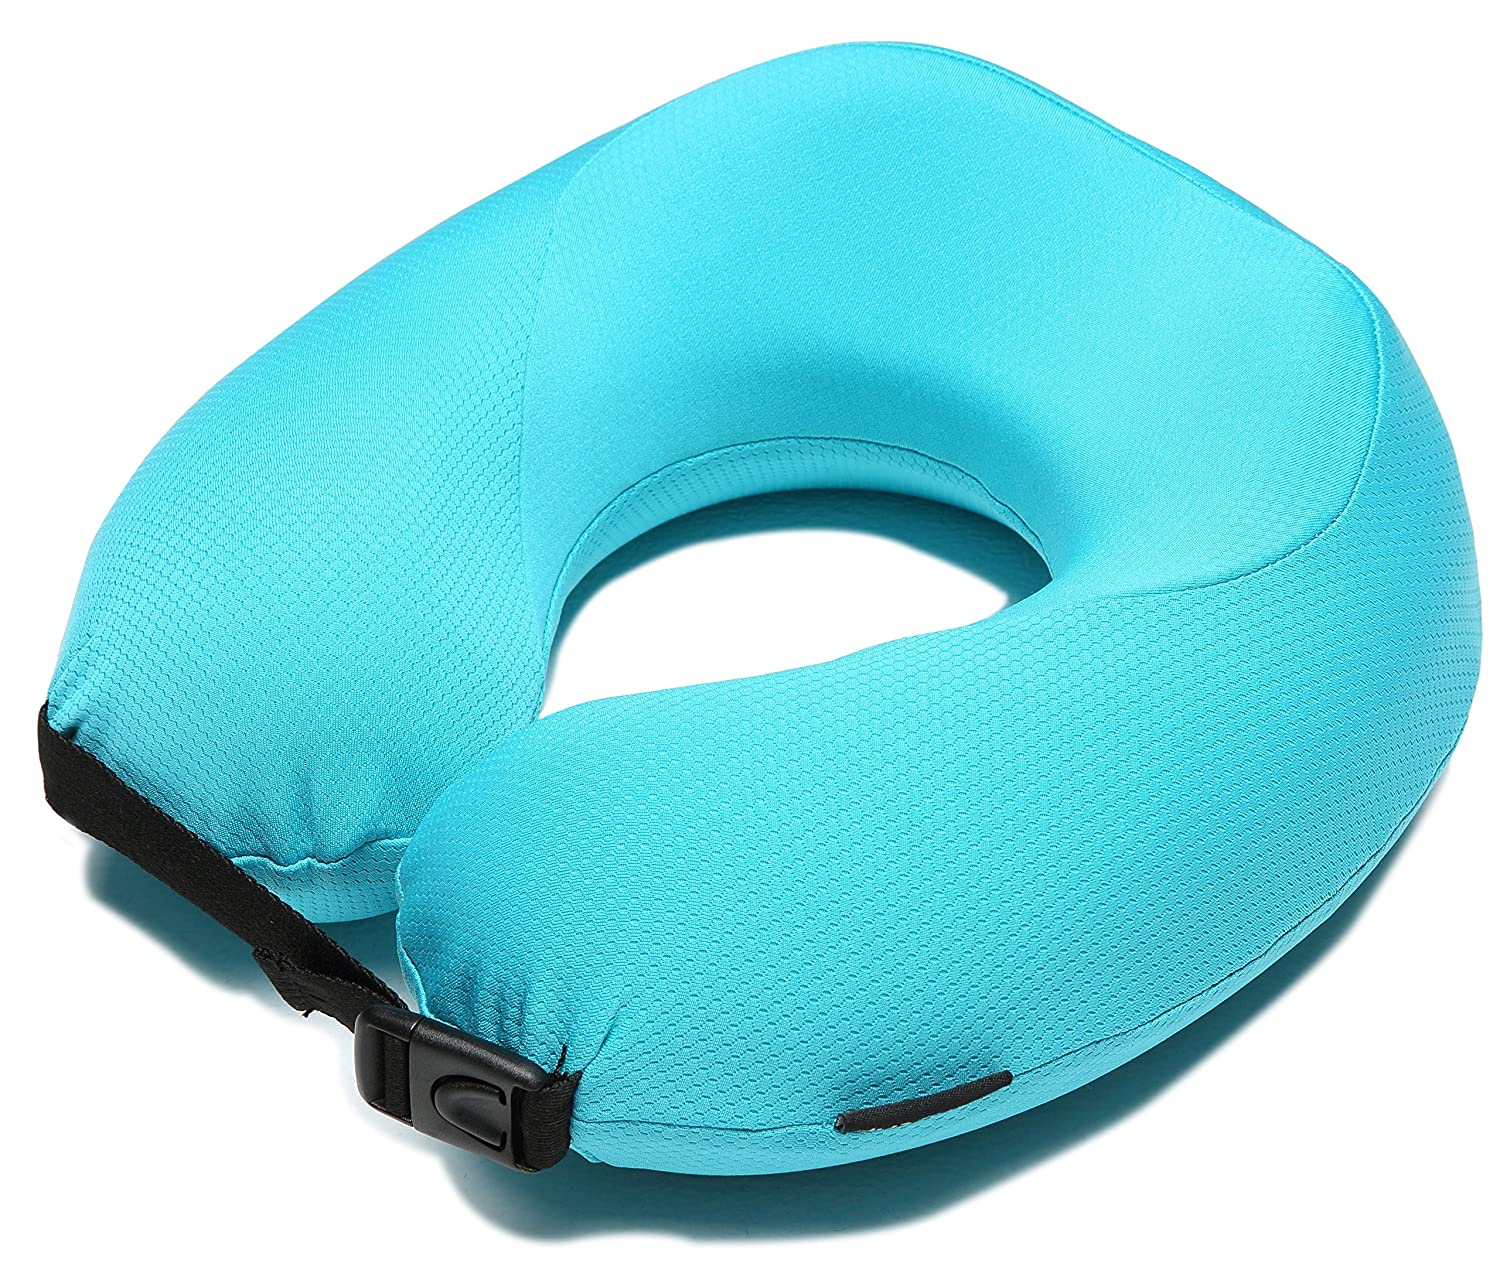 smartrip Adjustable Pillow Size Chin and Cheeks Supporting Fits Neck in Ideal Position Memory Foam Wicking Fabric Patented Travel Neck Pillow Tenderness Scuba Blue Washable